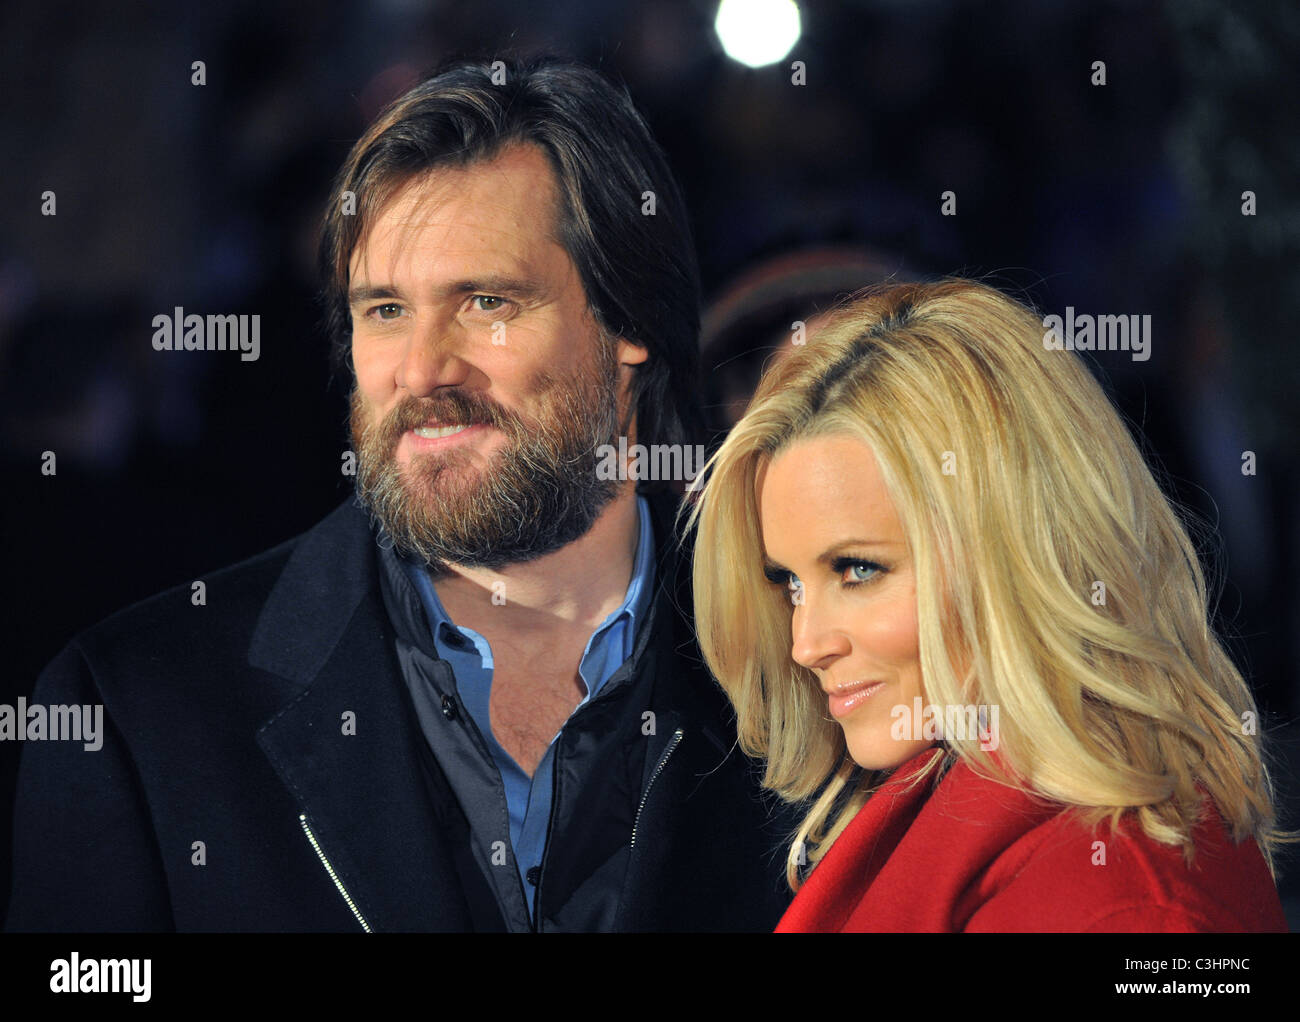 Christmas Carol Jim Carrey.Jim Carrey And Jennifer Mccarthy A Christmas Carol World